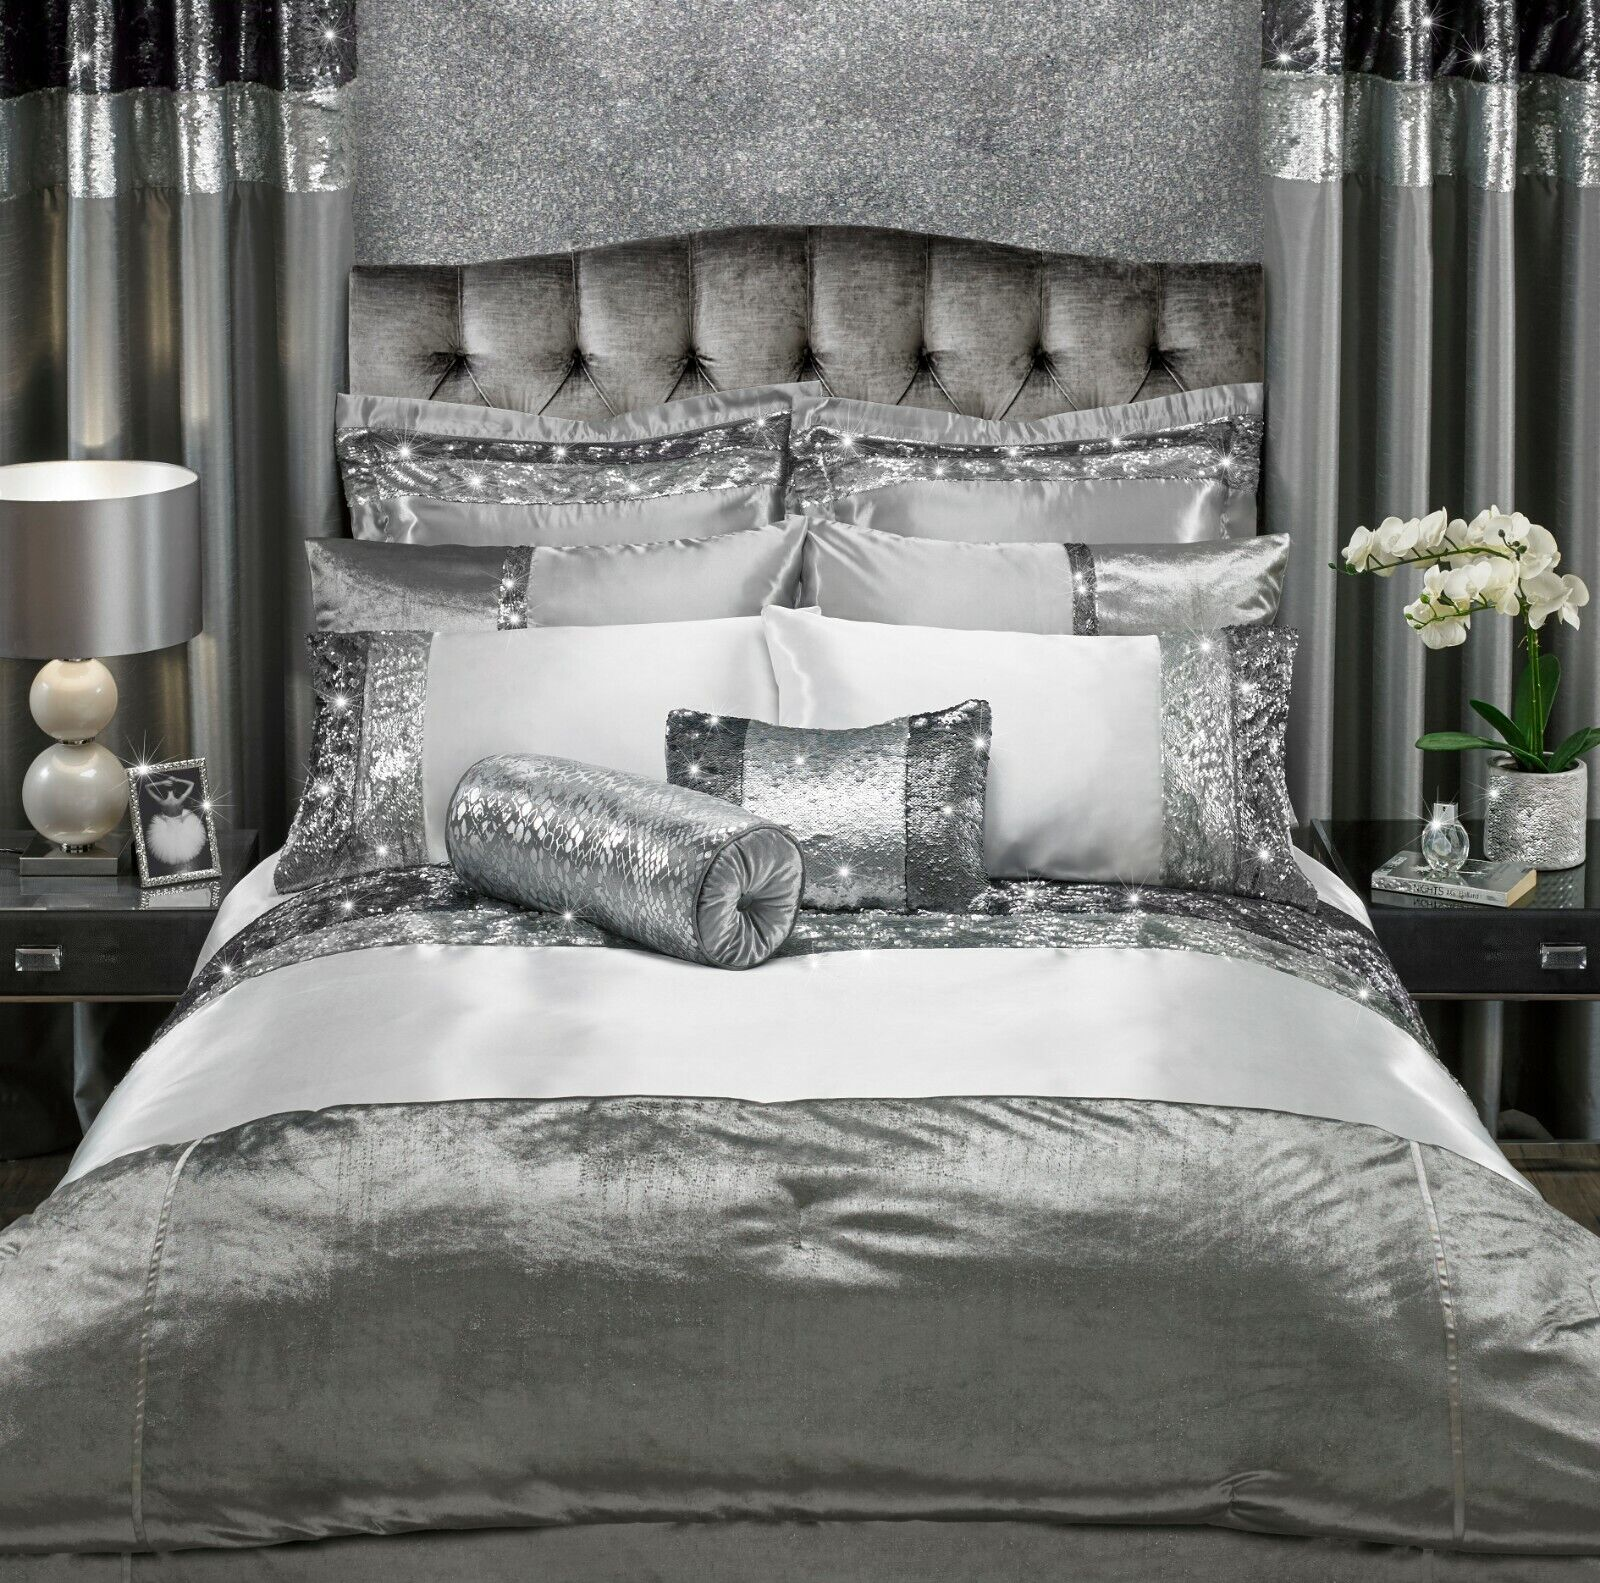 CAPRICE ADRIANA Duvet Covers with Pillowcases Single Size